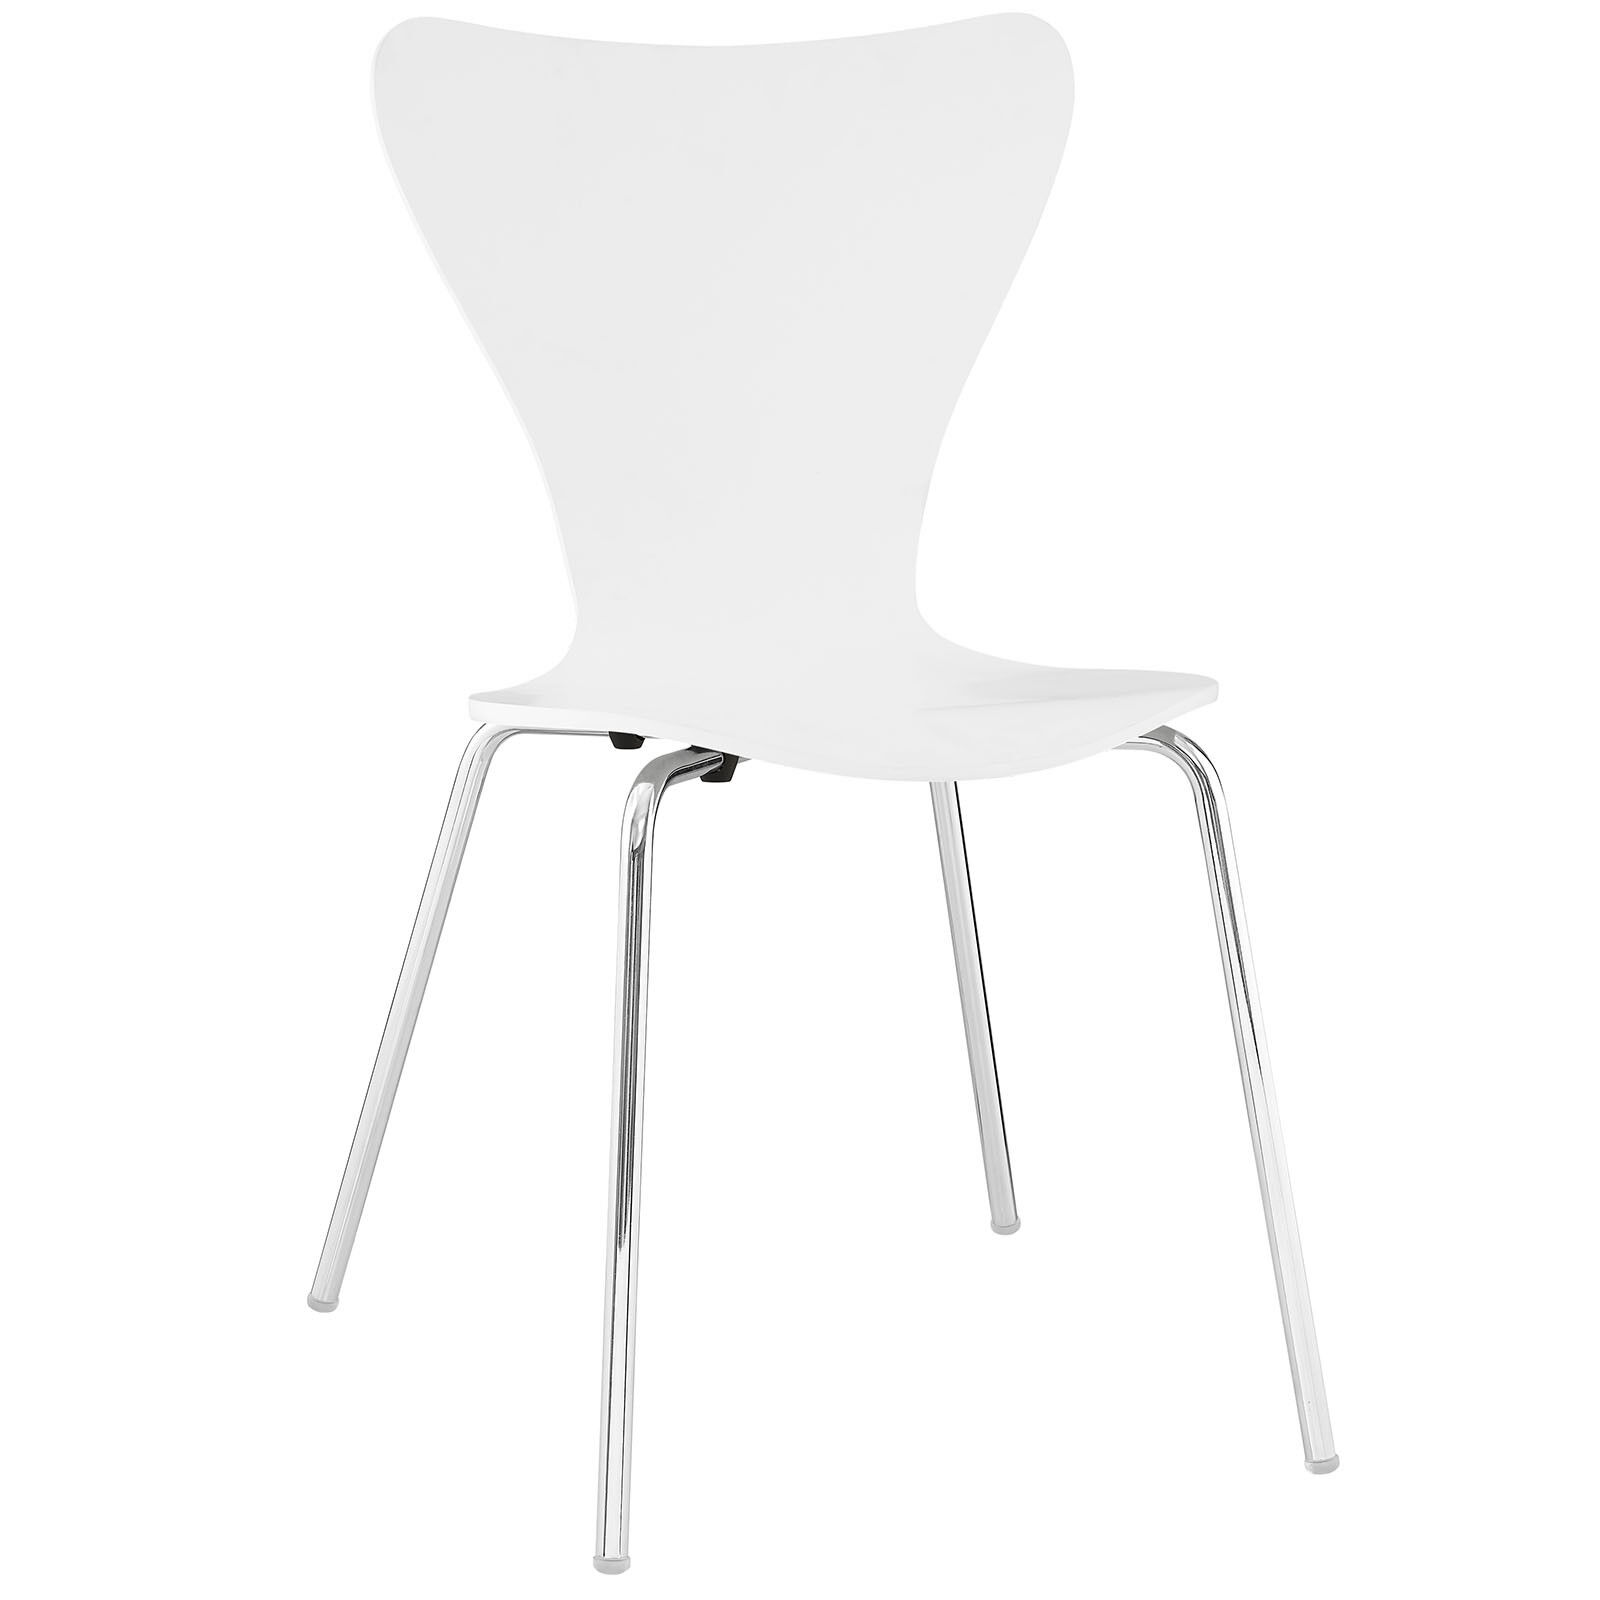 Stupendous Details About Mid Century Modern Retro Bent Wood Chrome Metal Leg Dining Side Chair In White Machost Co Dining Chair Design Ideas Machostcouk